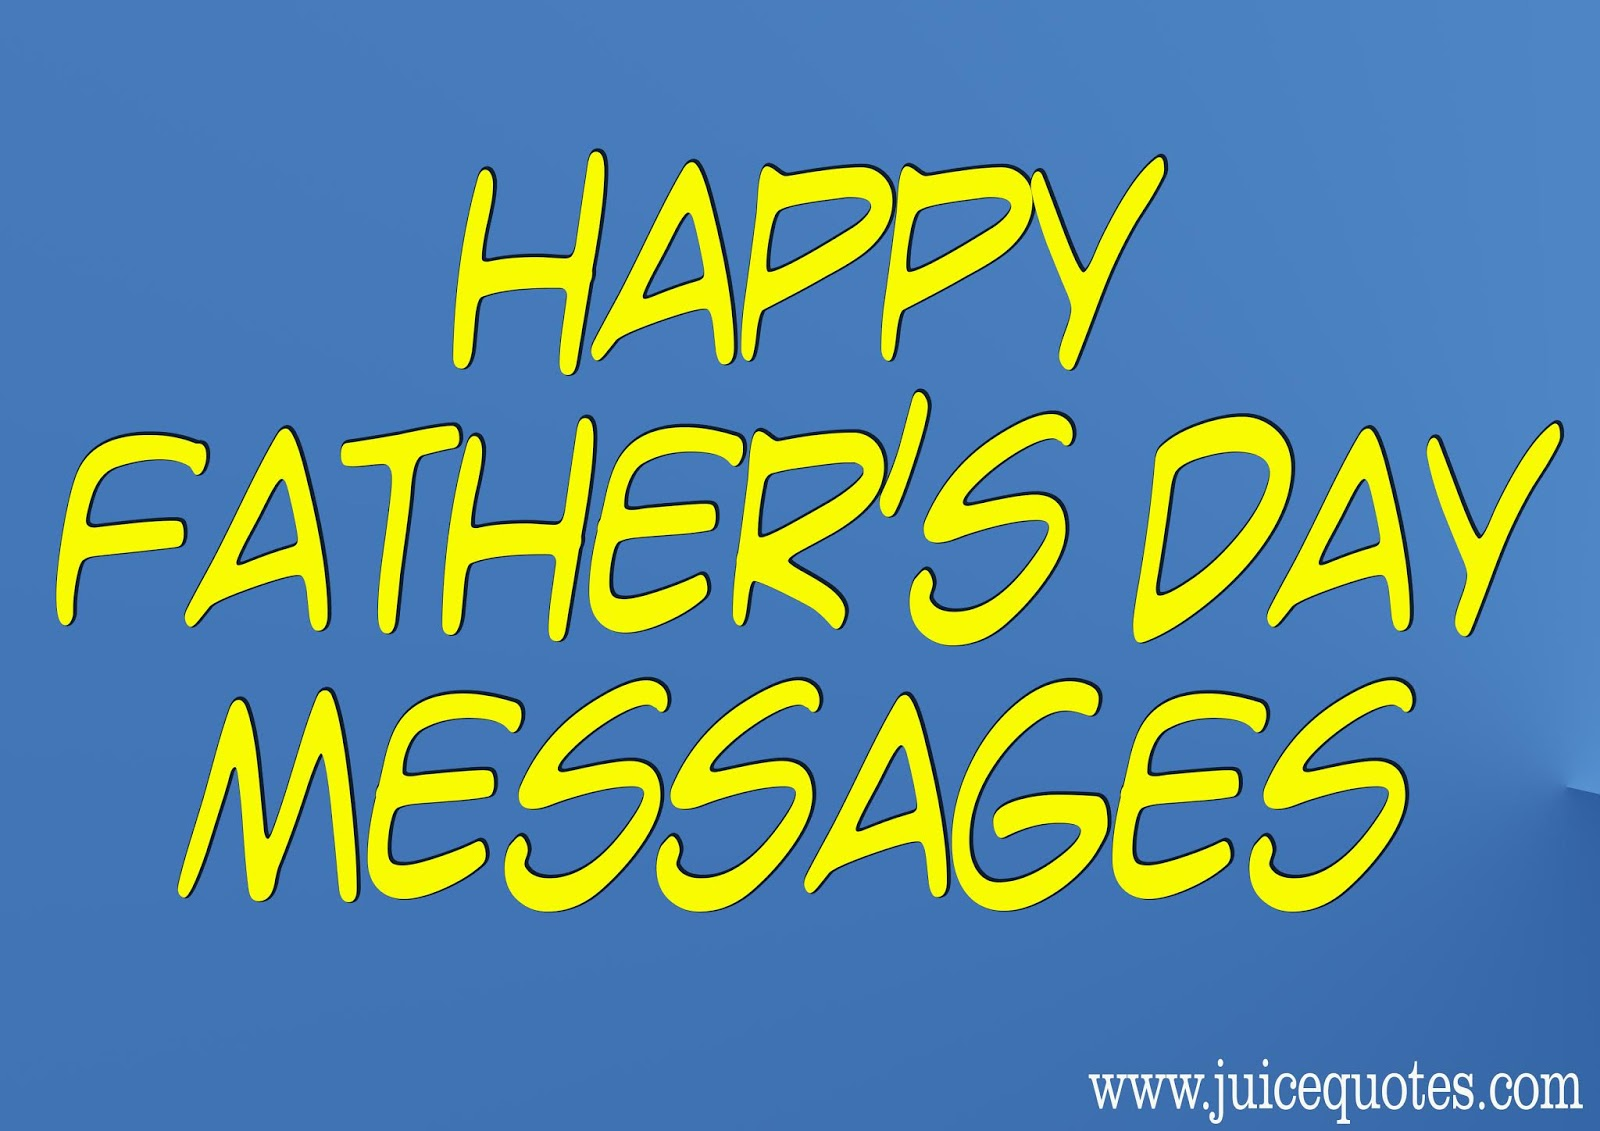 Fathers day quotes and messages 2018 happy fathers day greetings whats more what superior to anything penning down some unique and sweet messages in your fathers day card m4hsunfo